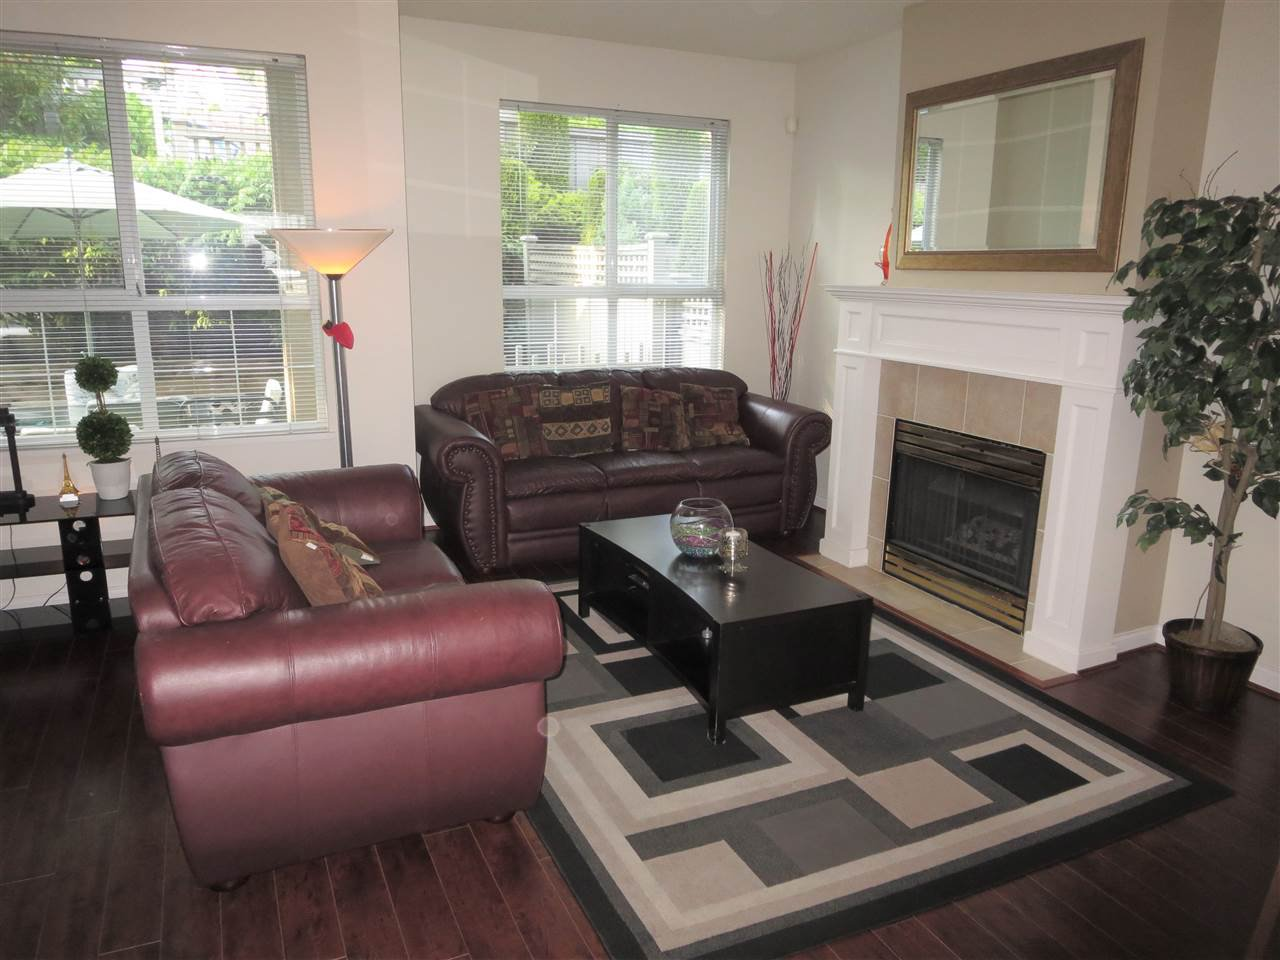 Photo 10: Photos: 2926 PANORAMA Drive in Coquitlam: Westwood Plateau Townhouse for sale : MLS®# R2293331